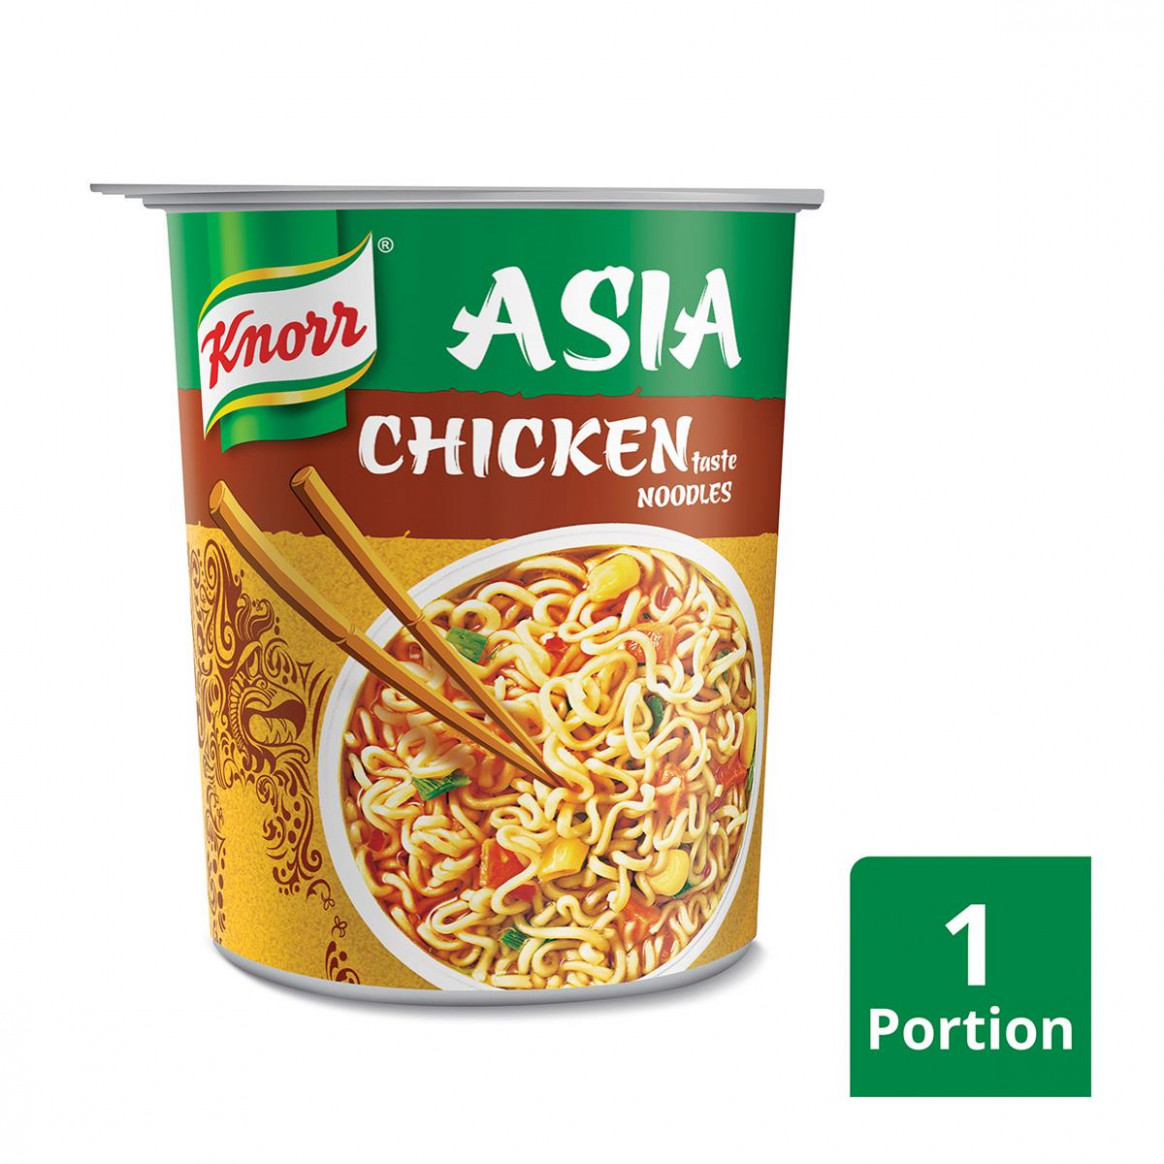 Knorr Asia Snackbecher Chicken Taste Noodle - chicken recipes knorr